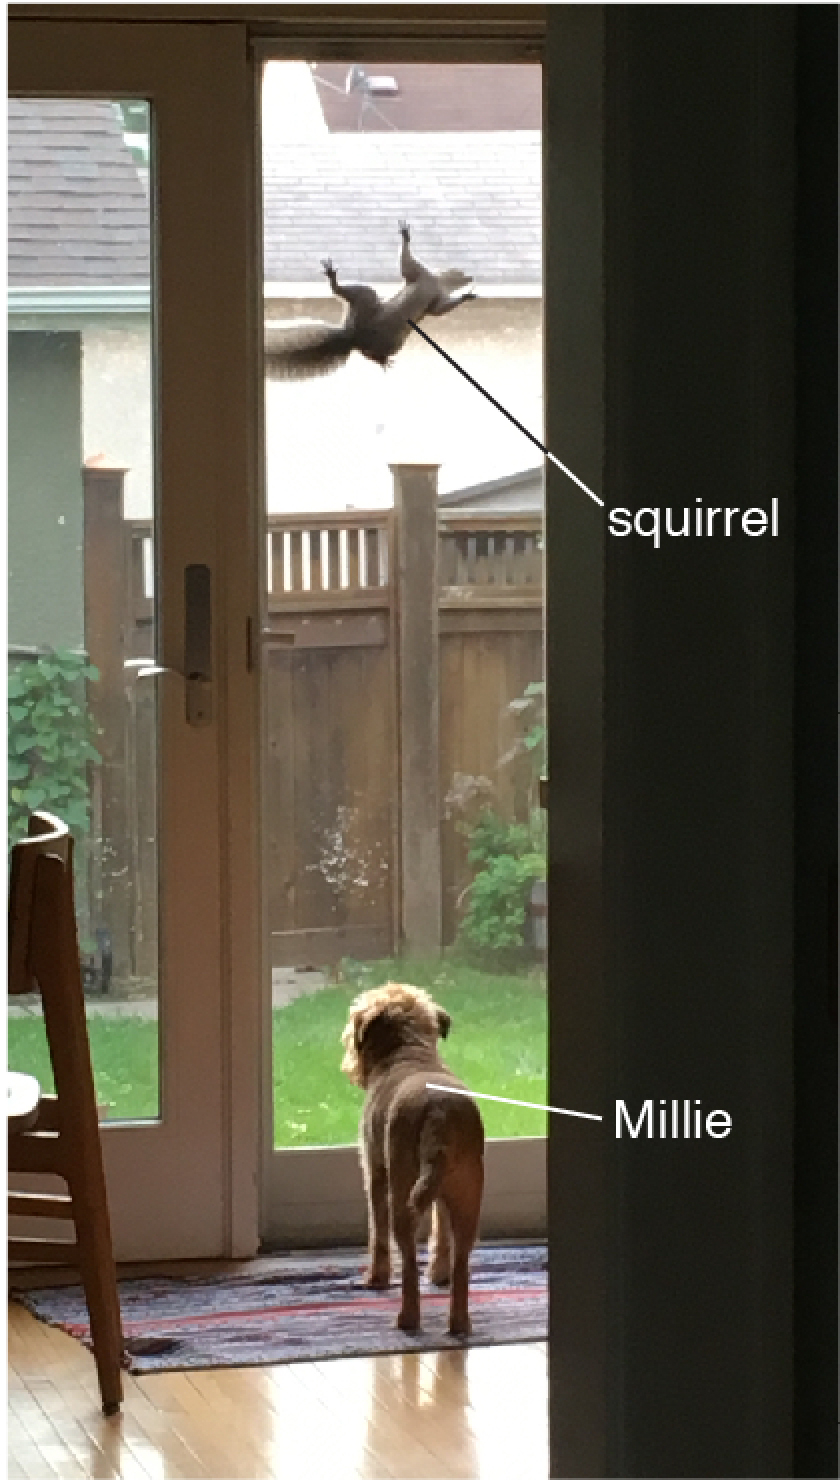 squirrel-millie-words